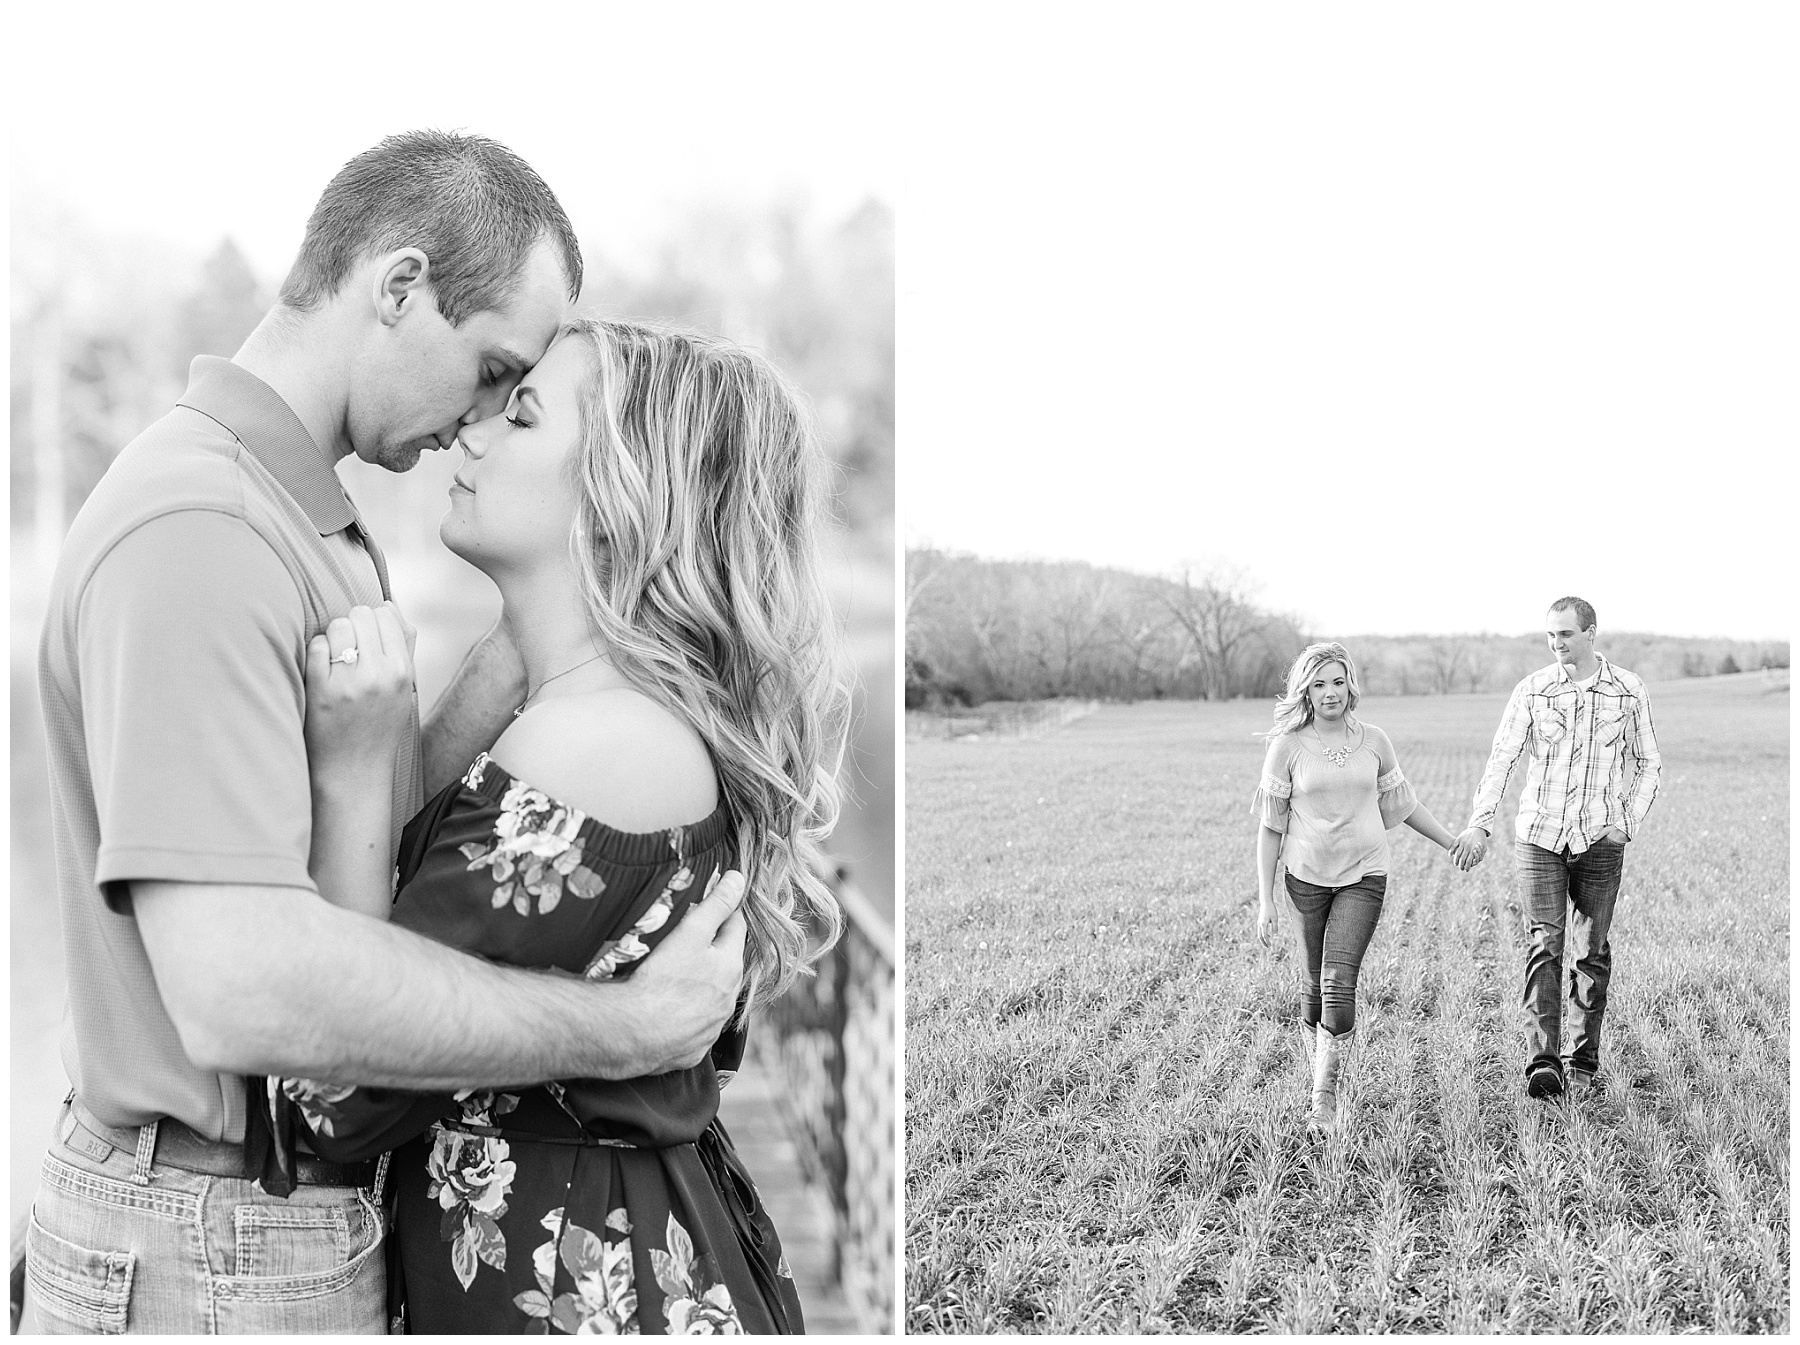 Spring Sunset Farm Engagement Session on Family Farm in Missouri Midwest by Kelsi Kliethermes Photography_0011.jpg